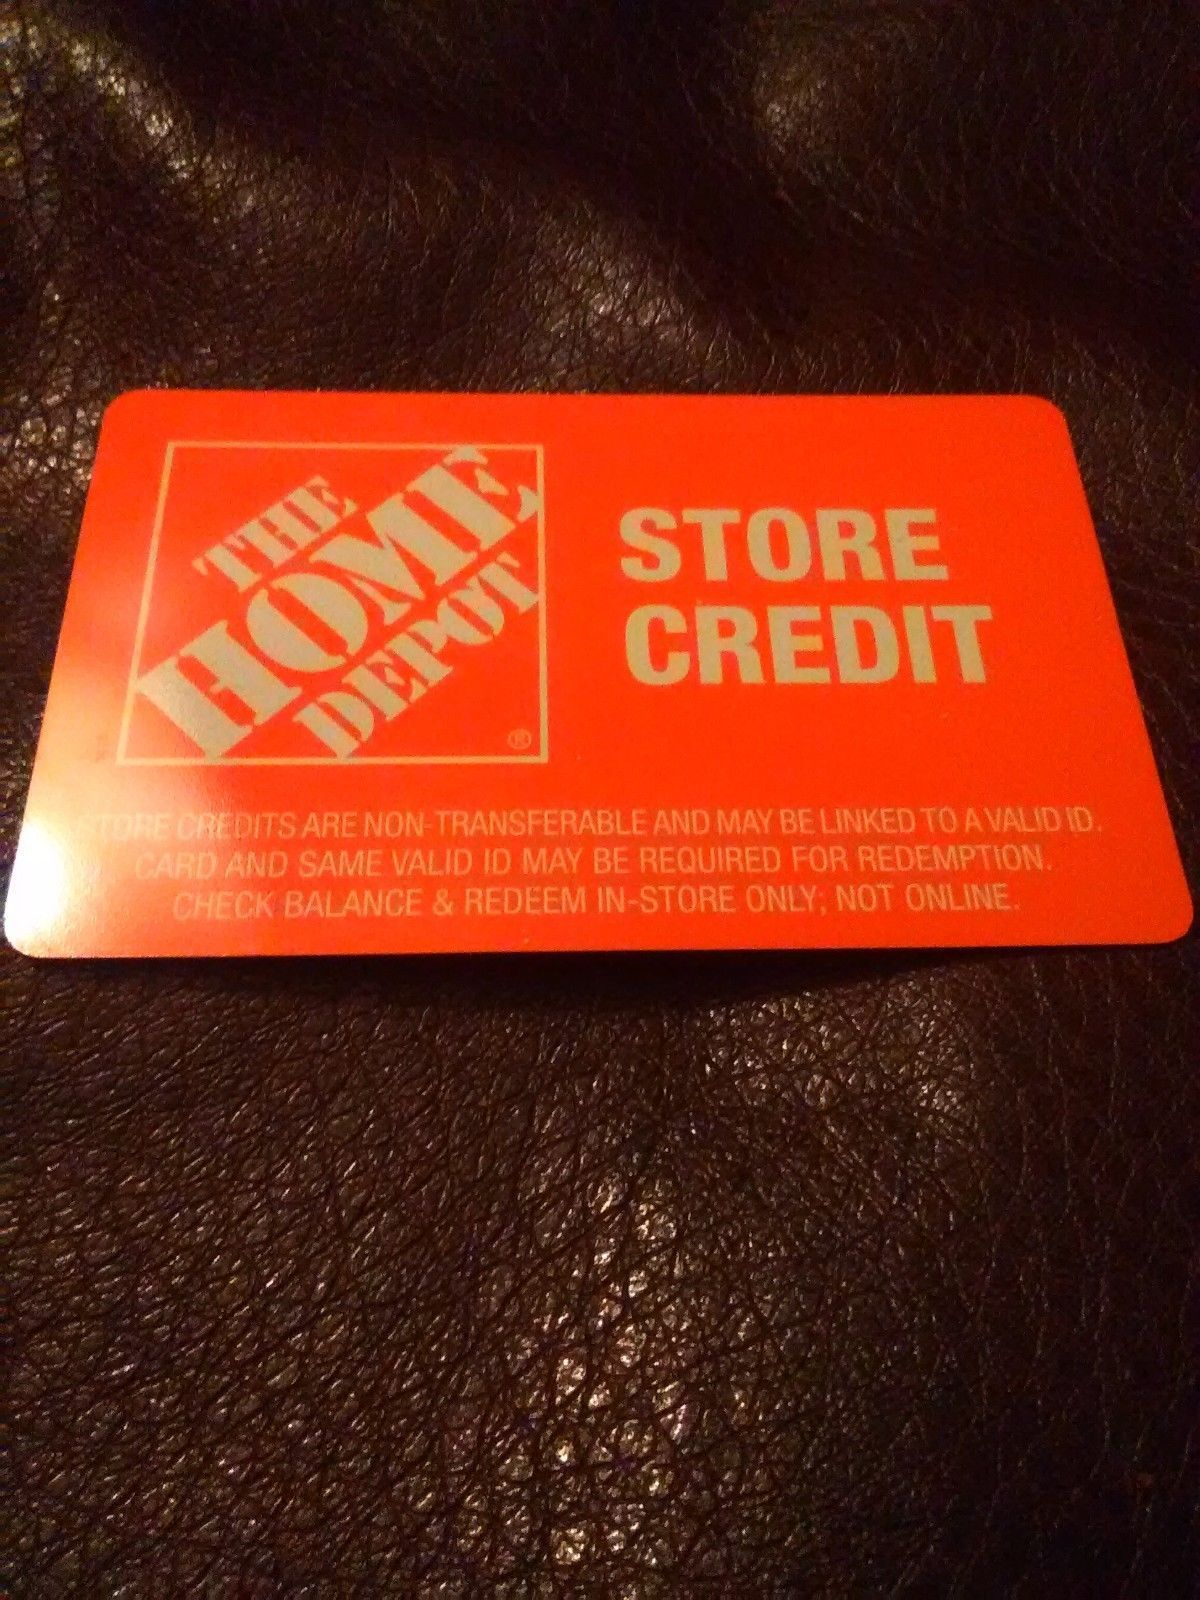 Home Depot Gift Card Merchandise Return Card Store Credit Card 210 94 Https T Co Qupmeafgn1 Https T Co X97ldr7tek Store Gift Cards Gift Card Cards